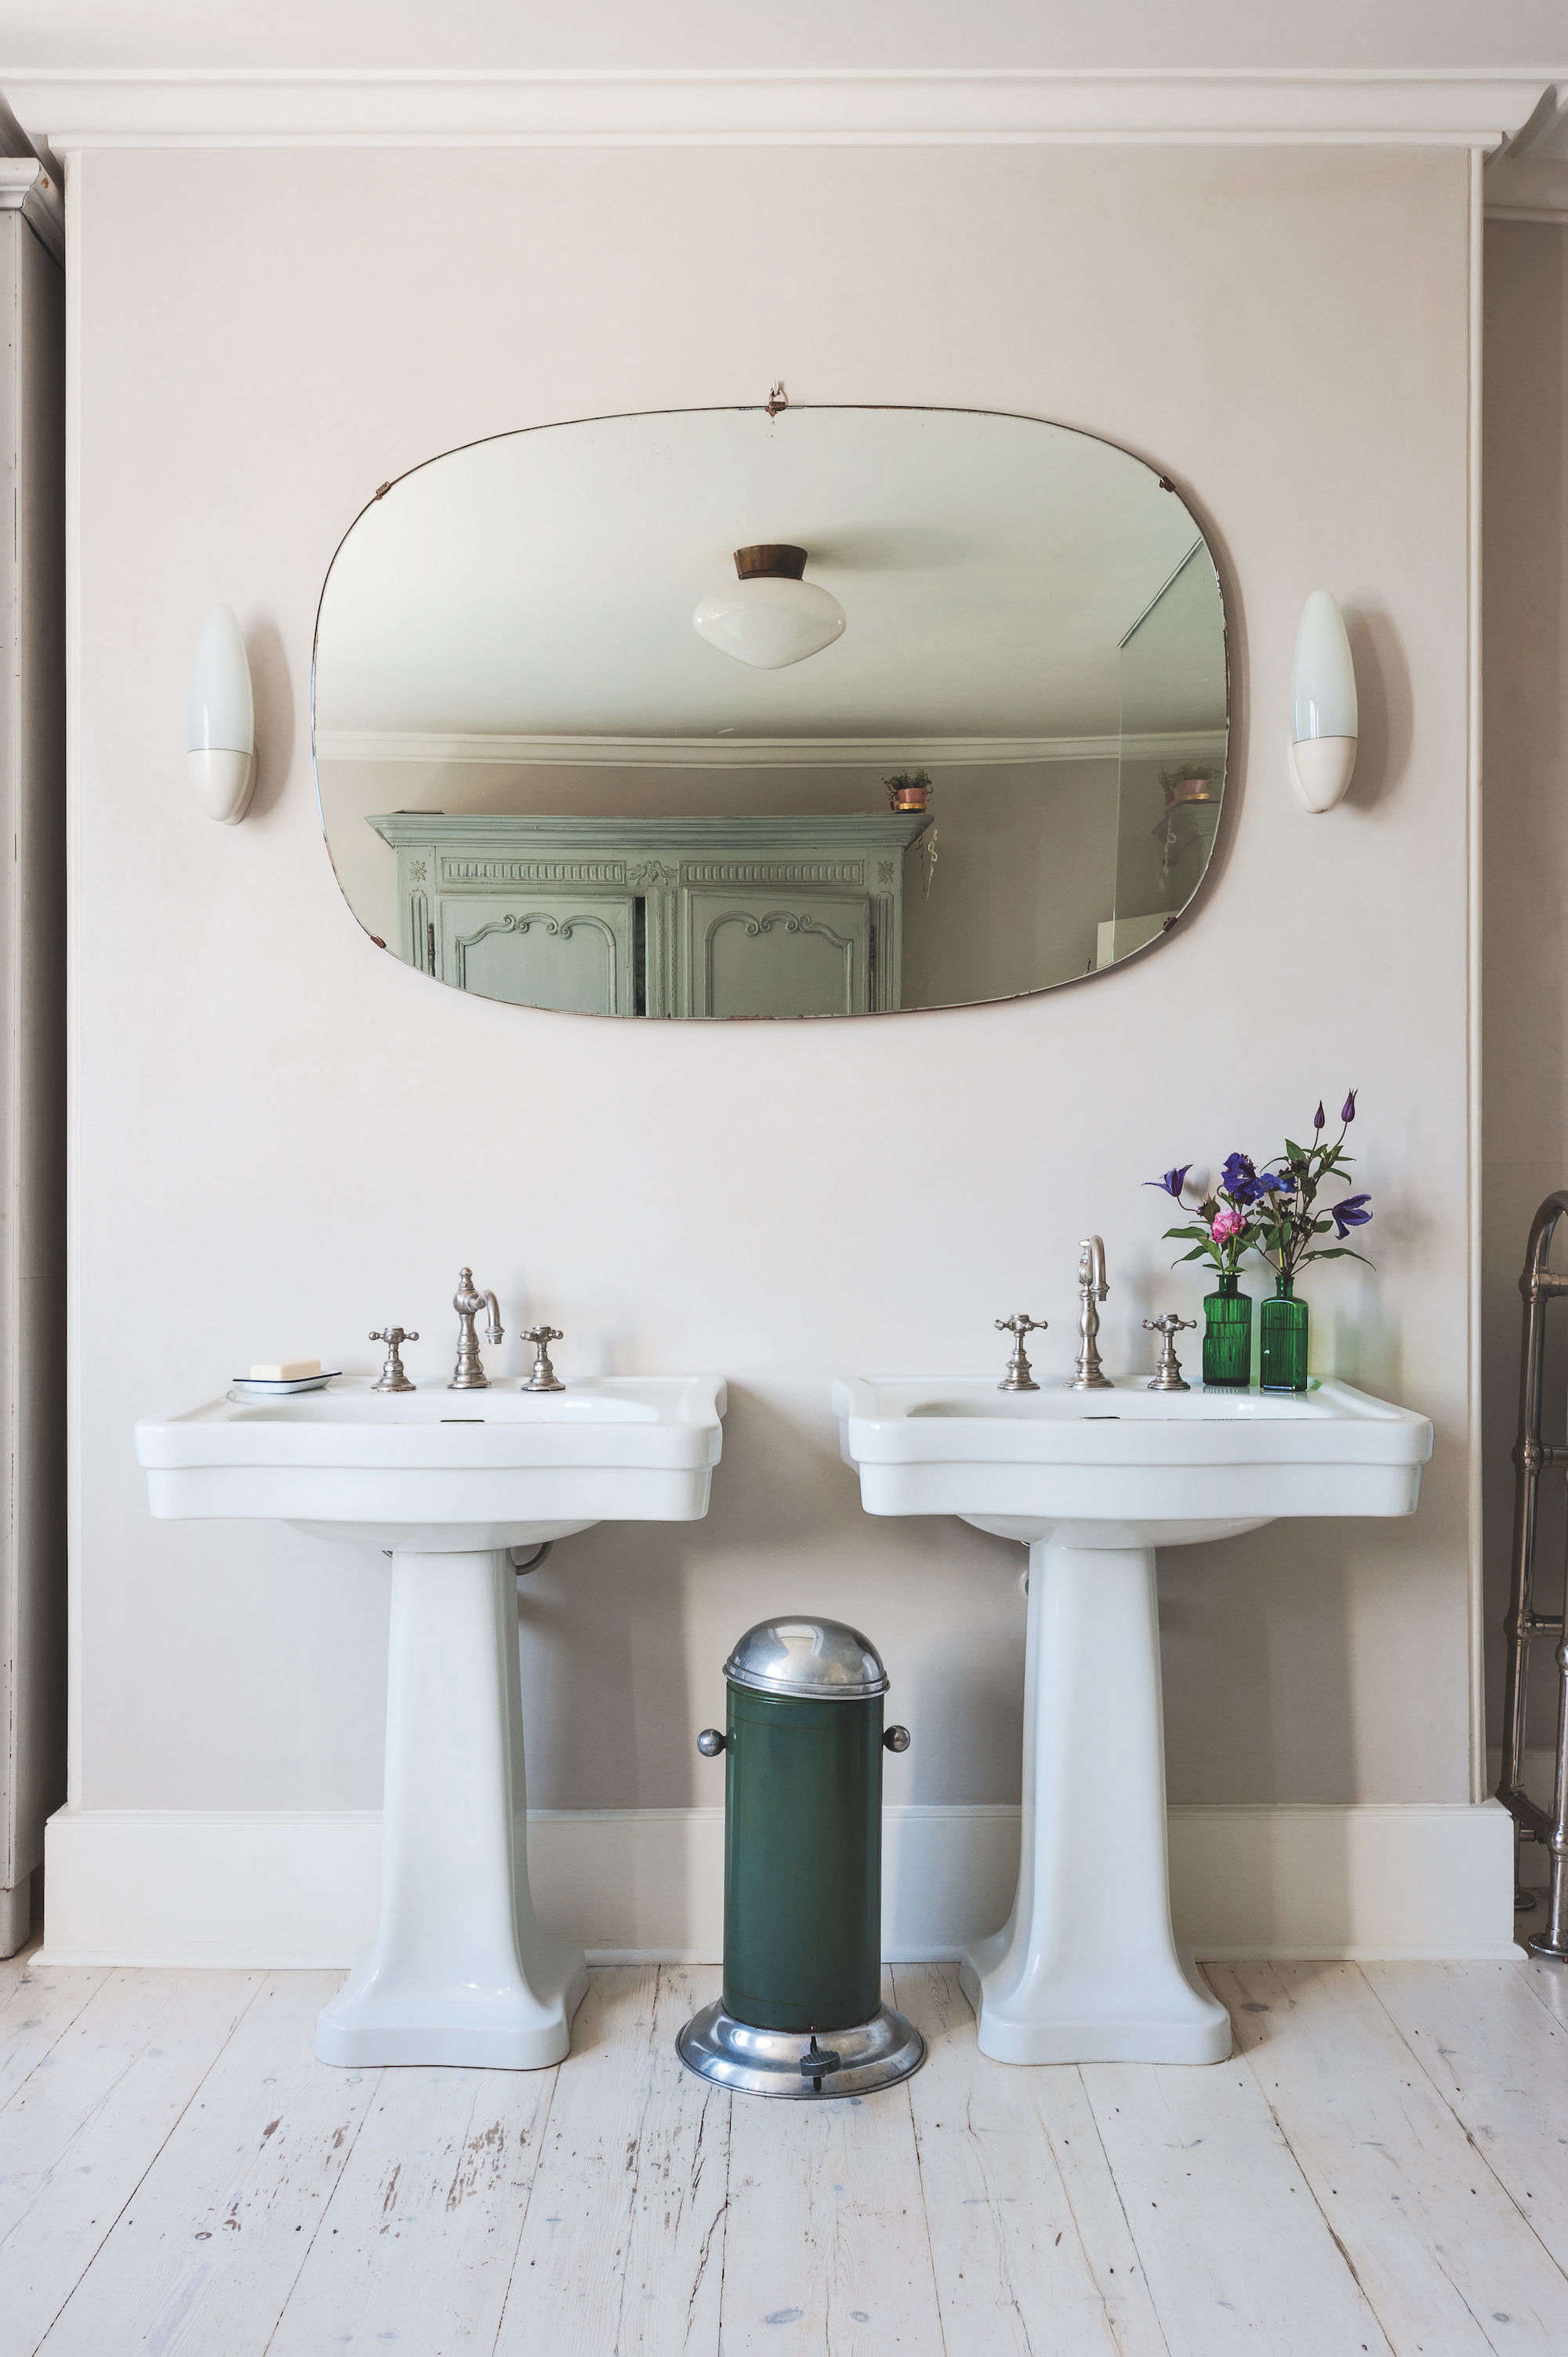 Ideal dual pedestal sinks green trash can round mirror